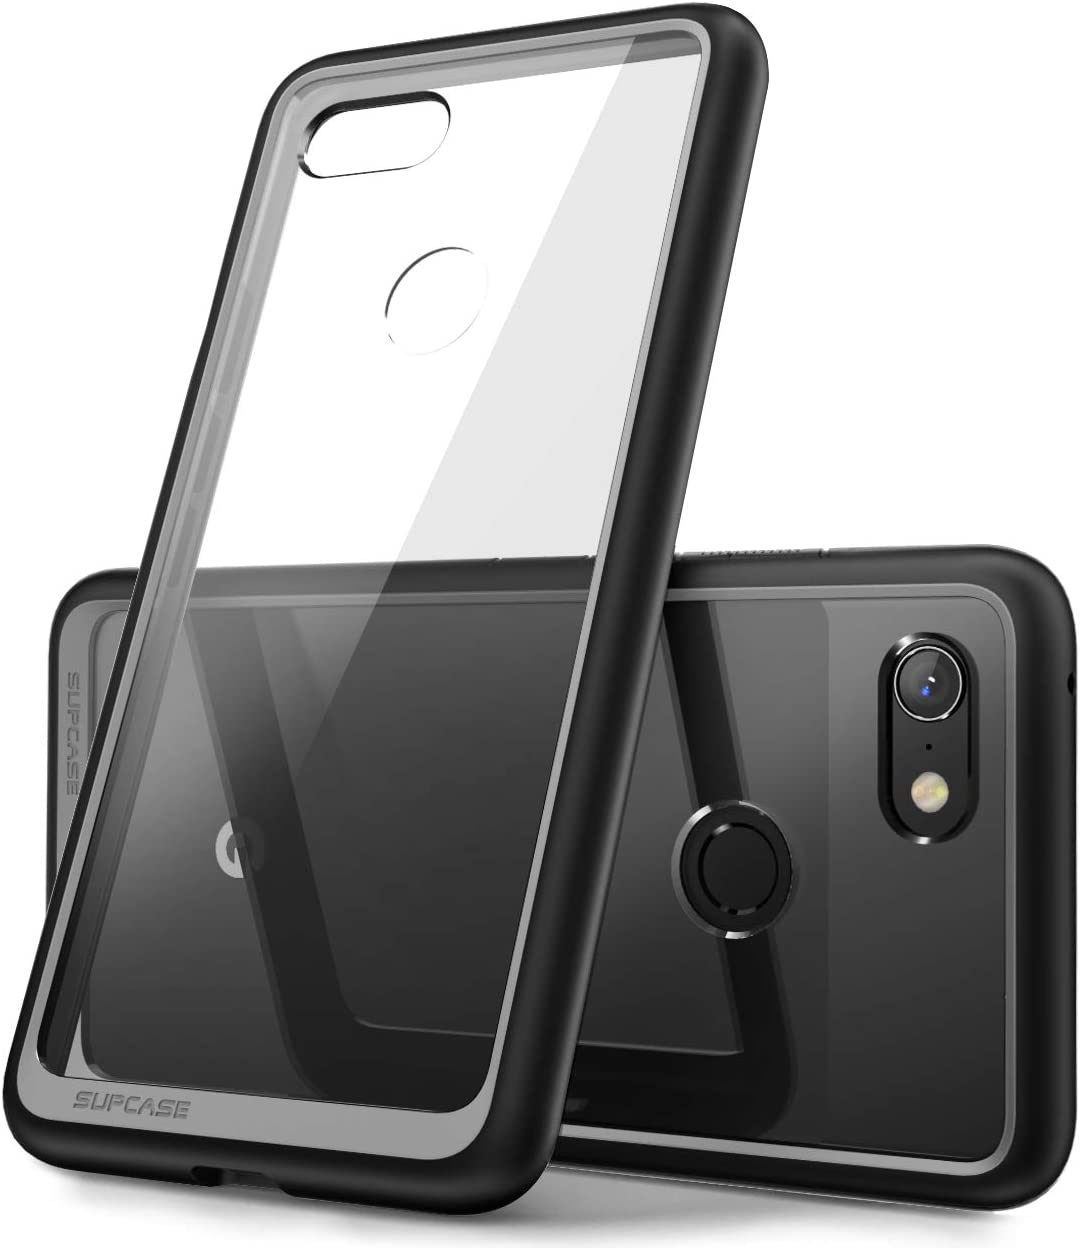 SUPCASE Unicorn Beetle Style Series Case for Google Pixel 3 XL, Clear Protective TPU Bumper PC Premium Hybrid Case for Google Pixel 3 XL 2018 Release -Retail Package (Black)